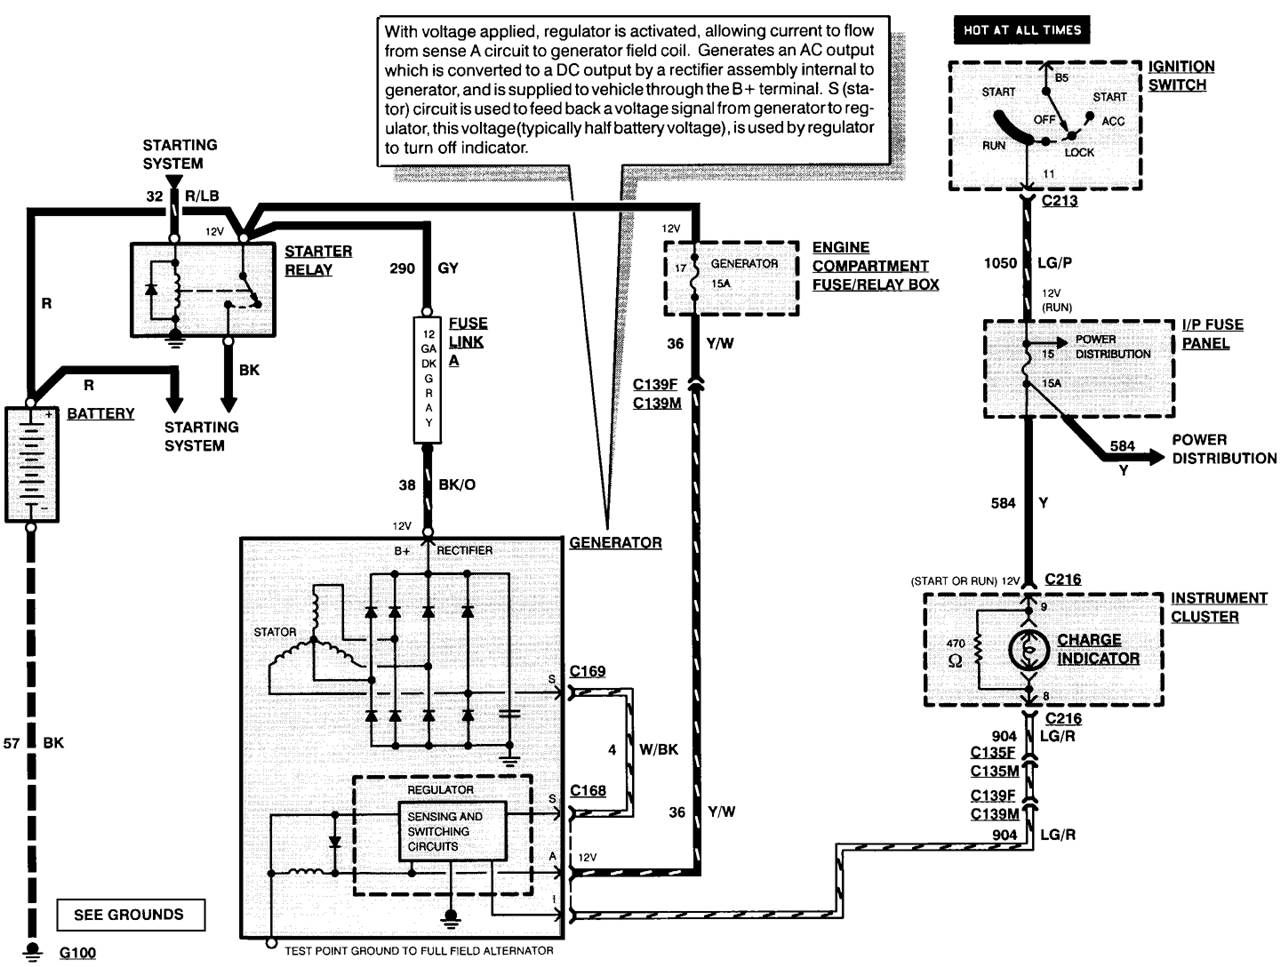 Ford Alternator Wiring Diagrams Carsut Understand Cars And Drive Automotive Diagram Internal Regulator